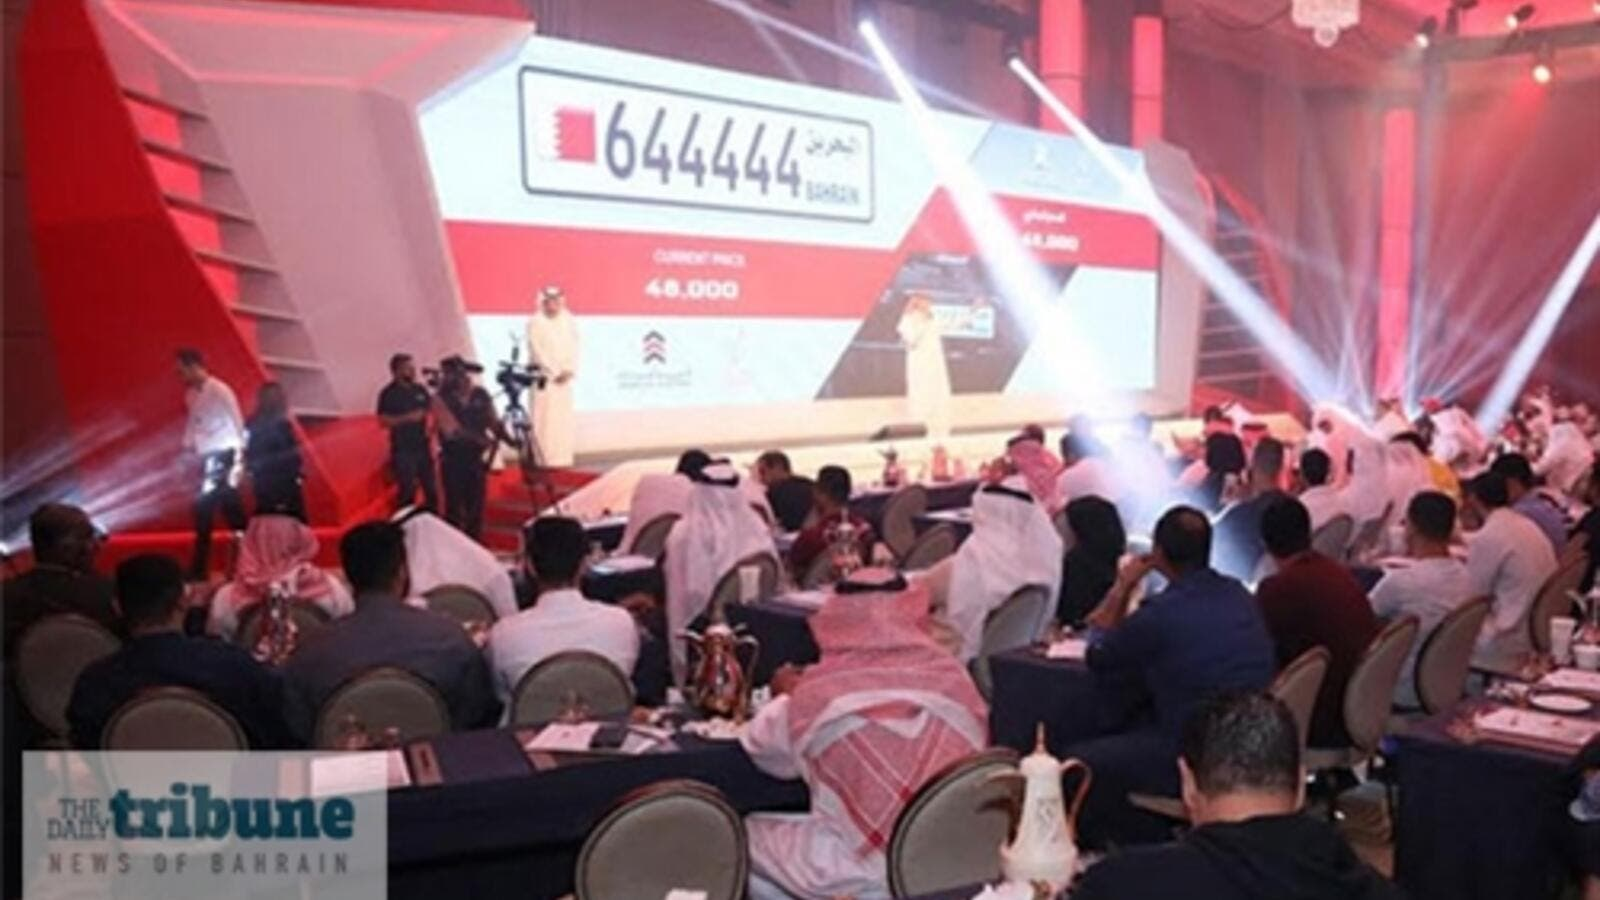 Bahrain: Car Number Plate Sold for Over $200,000